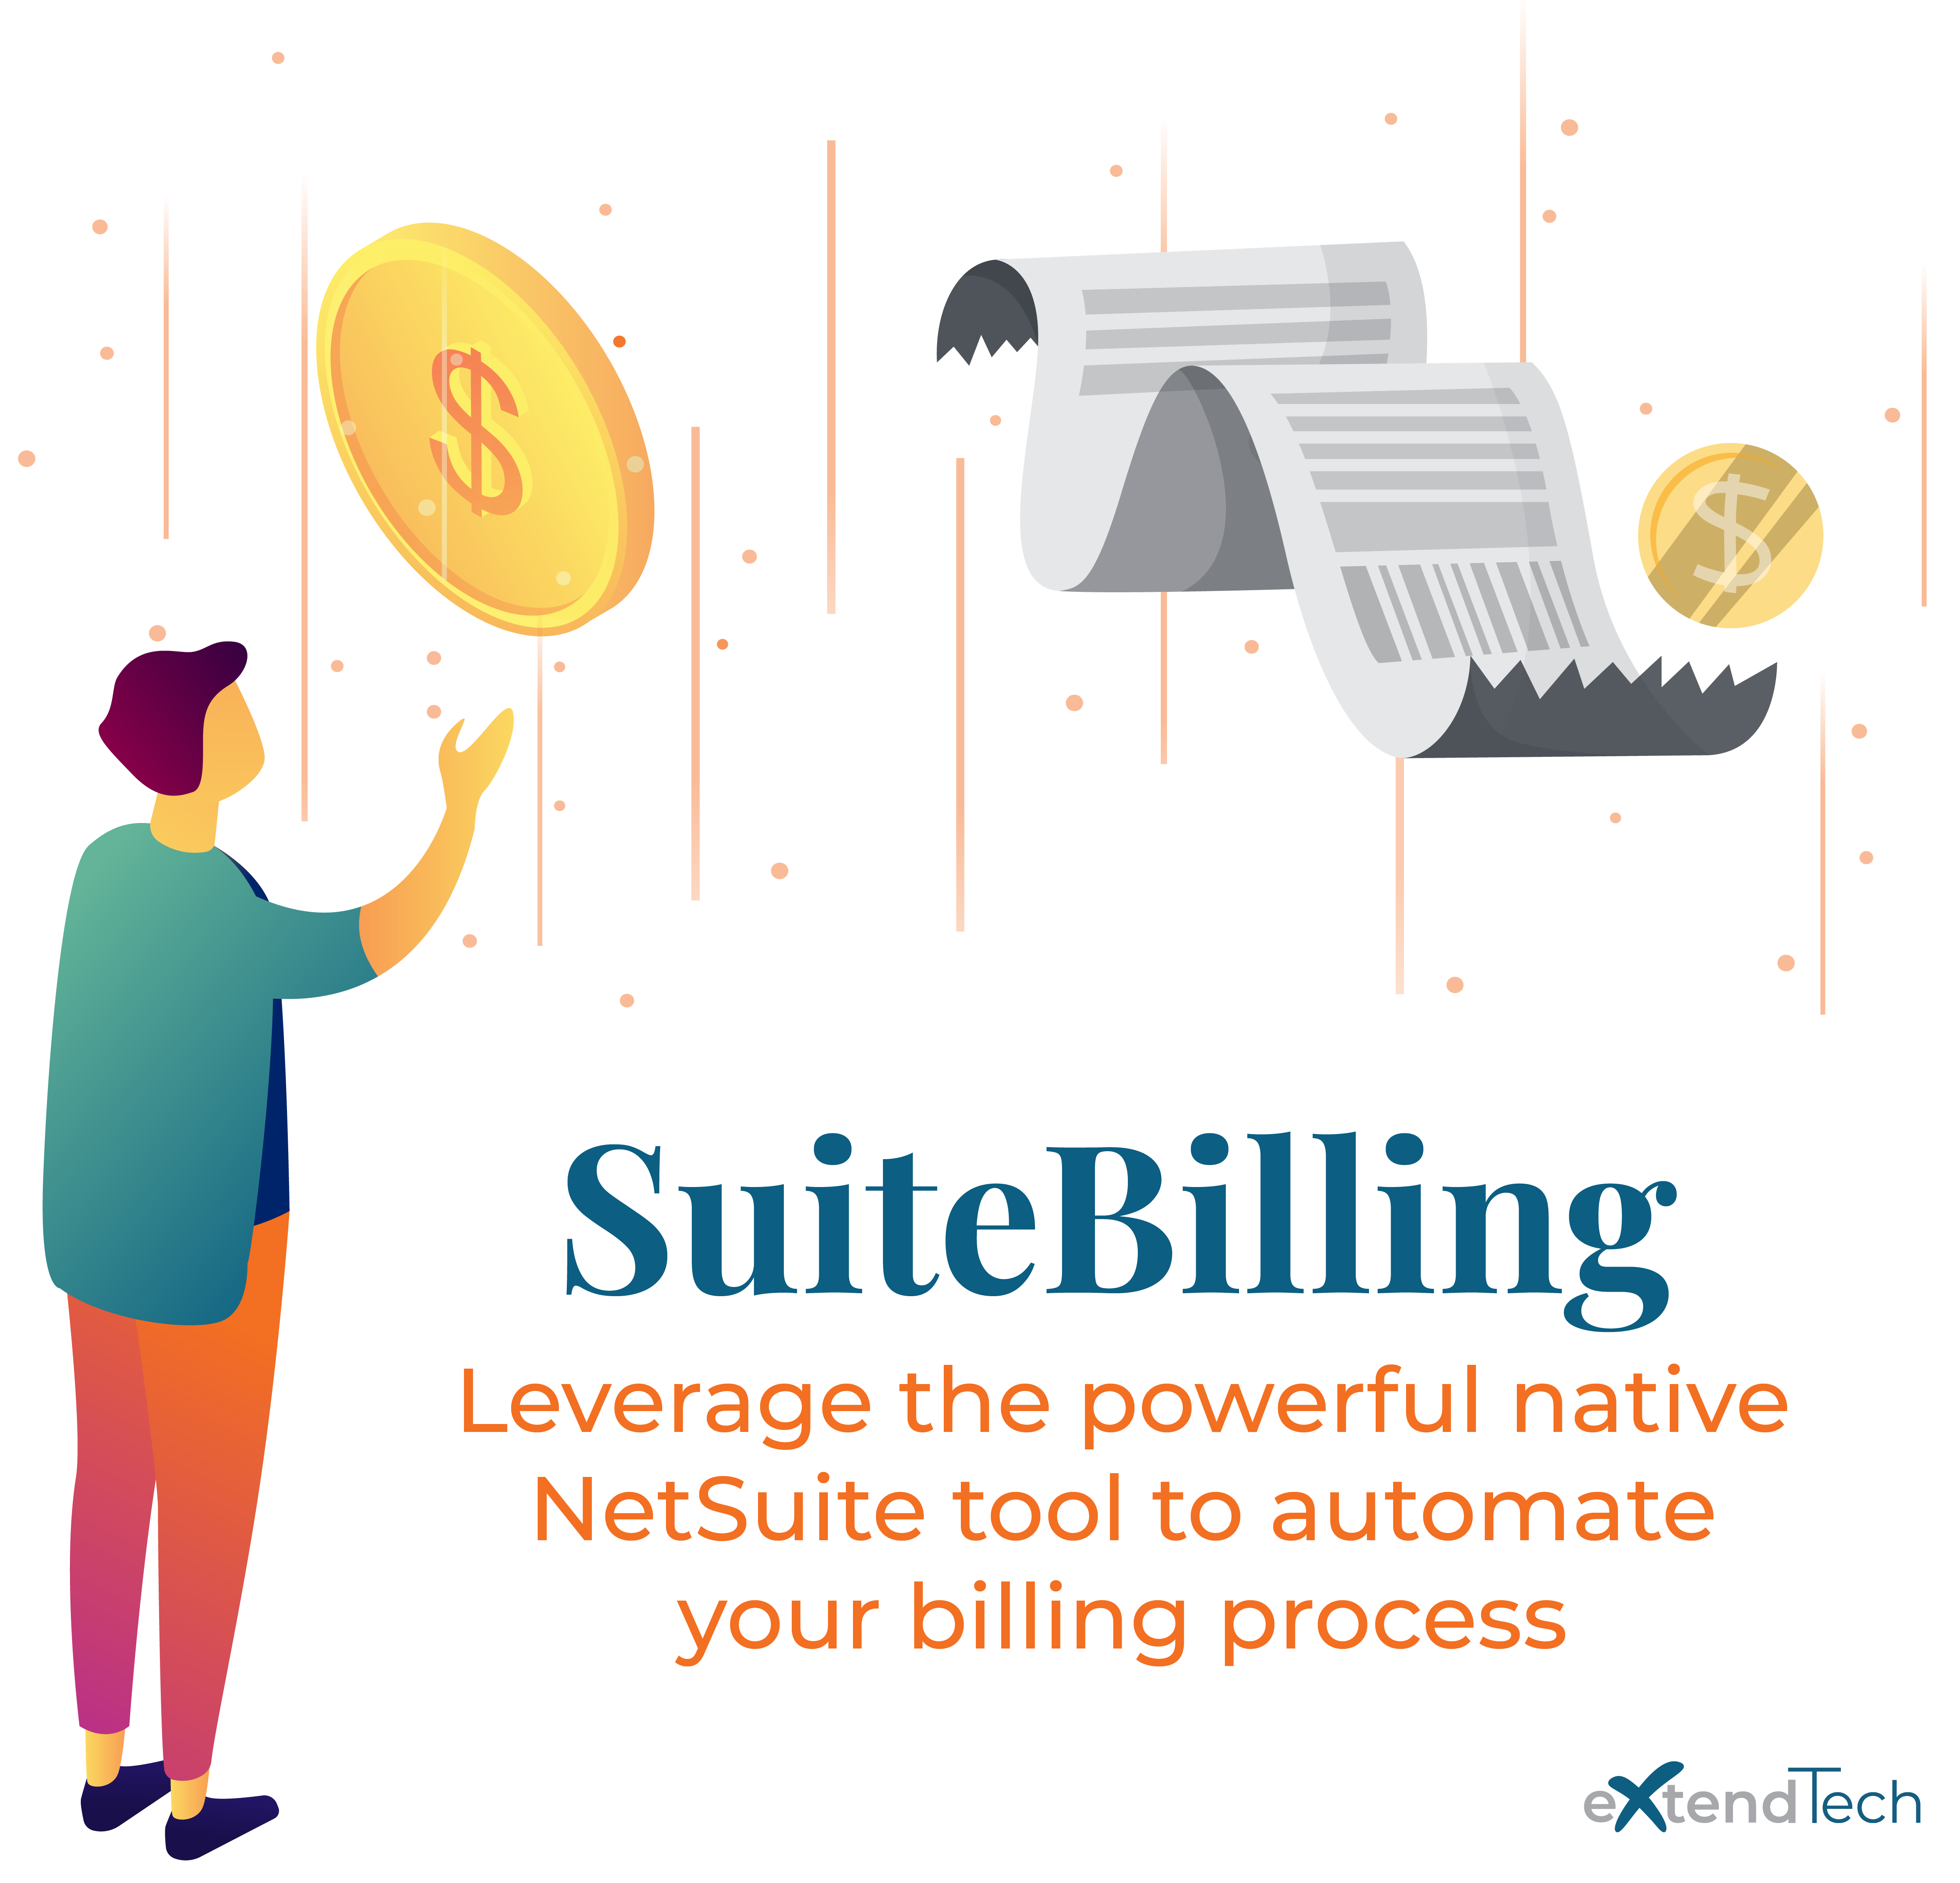 Vector of a man looking at a coin and a bill with the words SuiteBilling below. Leverage the powerful native NetSuite tool to automate your billing process.